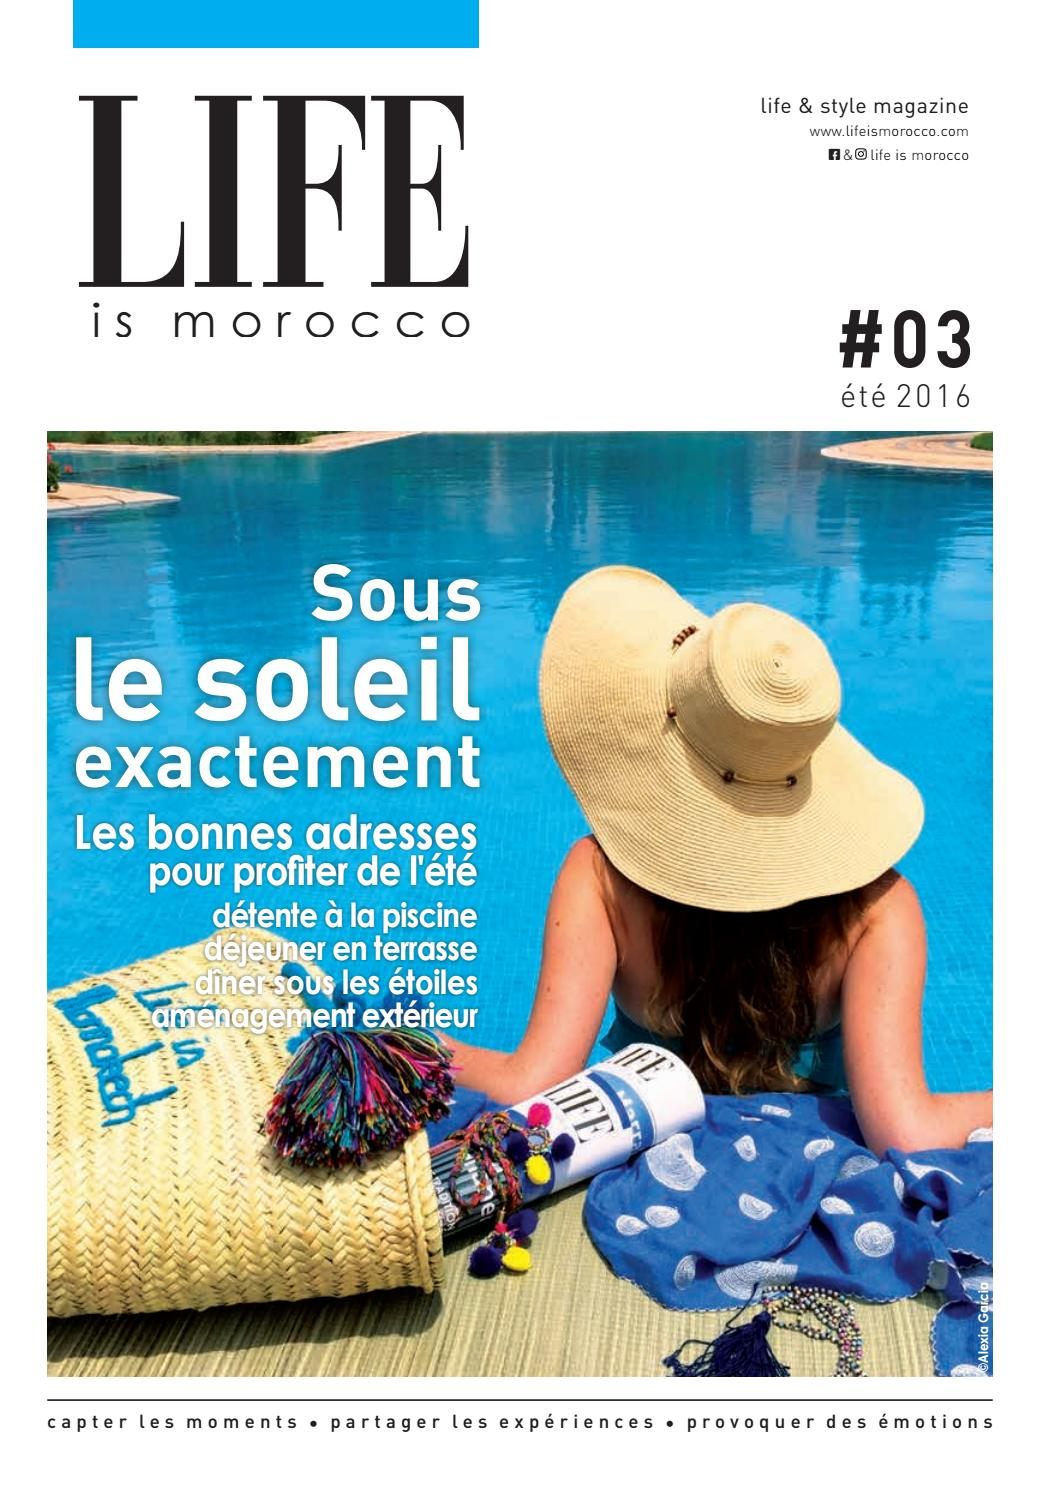 e13bc6c8cf1ee LIFE 03 by LIFE is morocco - issuu